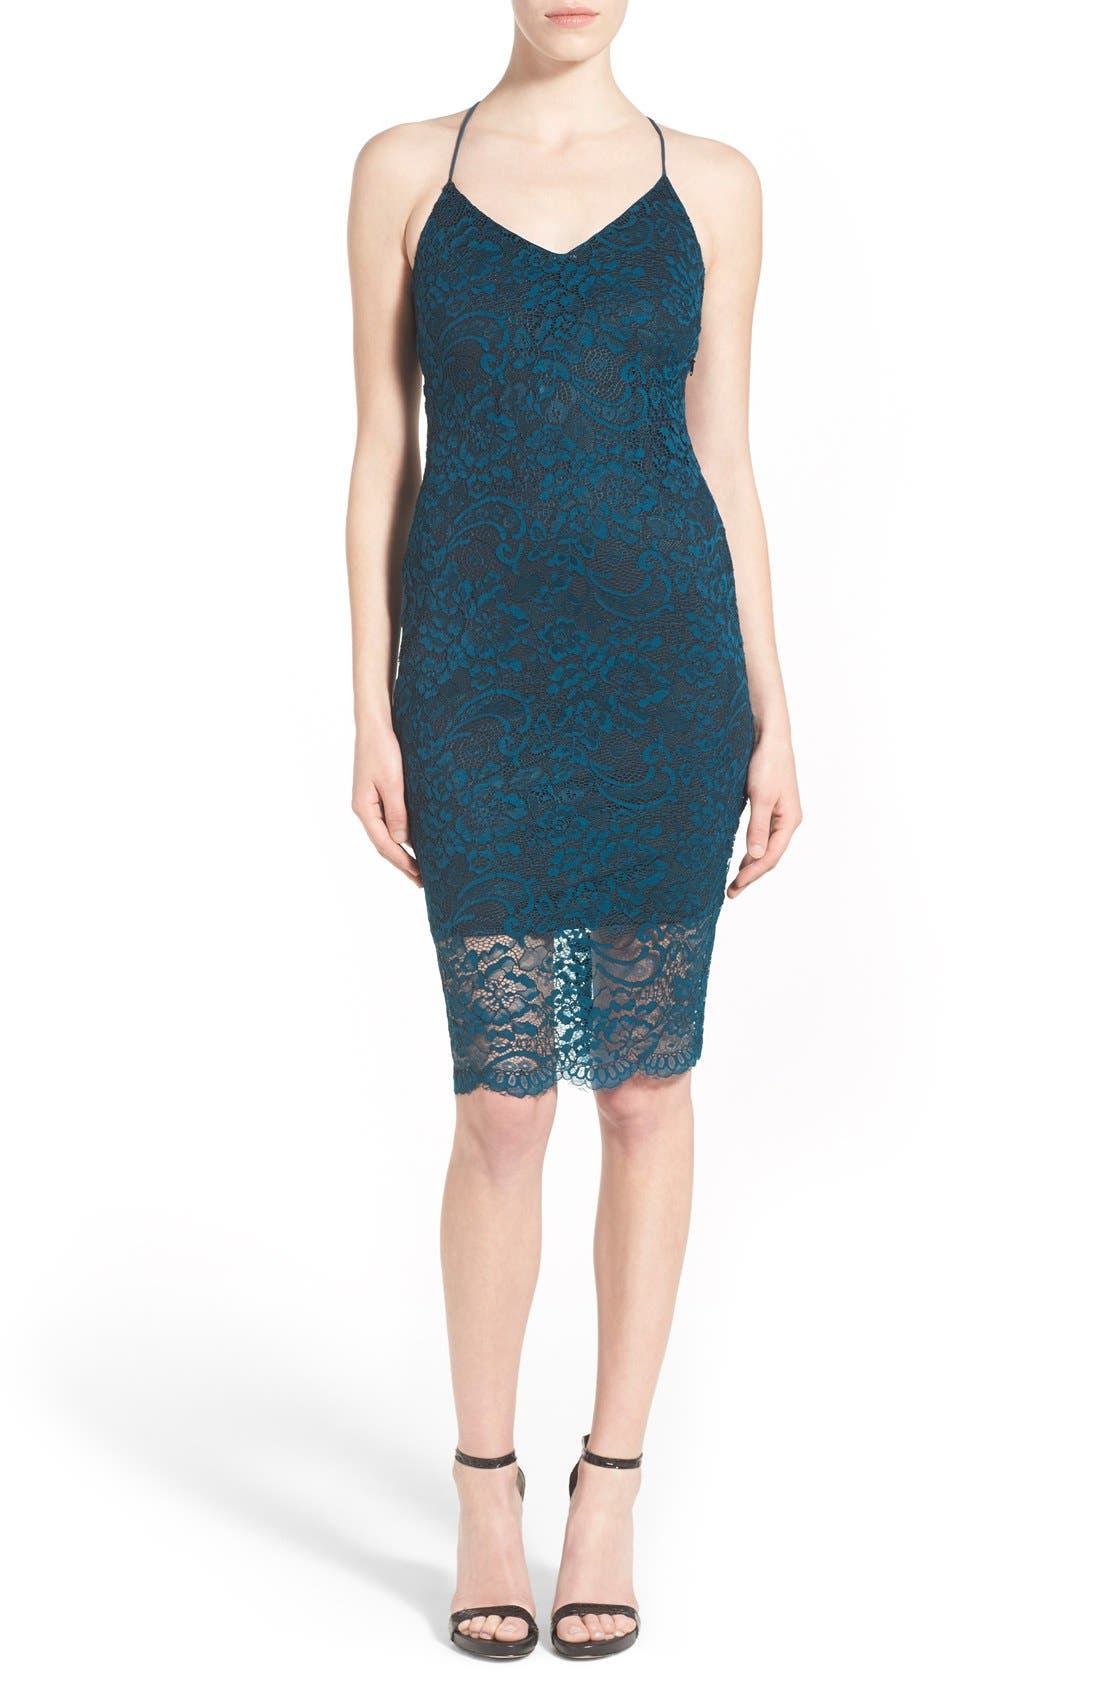 Alternate Image 1 Selected - Lovers + Friends 'Romance Me' Strappy Back Lace Dress